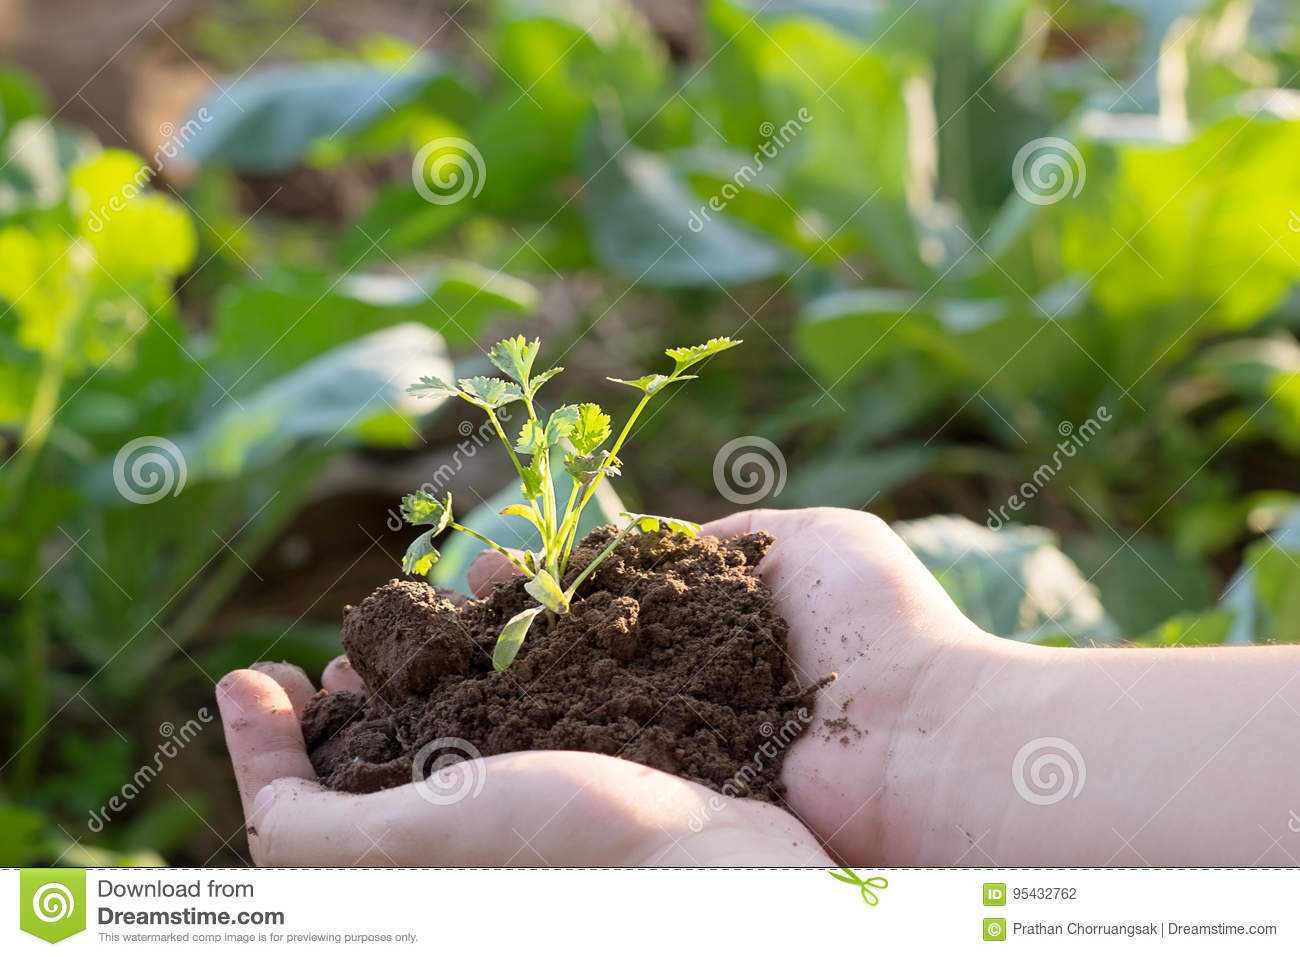 Soil cultivated dirt, earth, ground, agriculture land background.